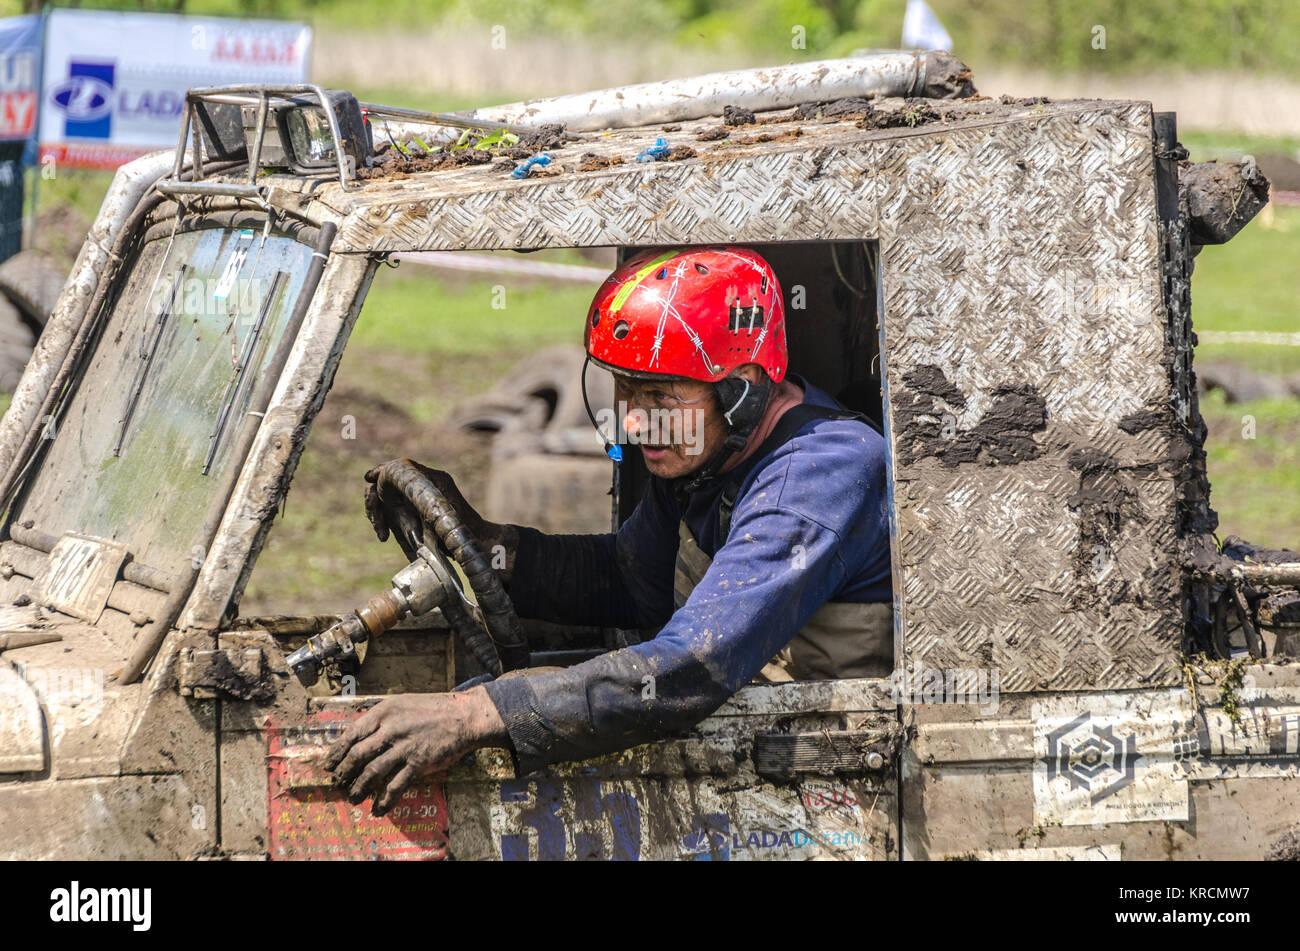 SALOVKA, RUSSIA - MAY 5, 2017: Jeep driving into mud at the annual competition 'Trofi rubezh 2017' - Stock Image